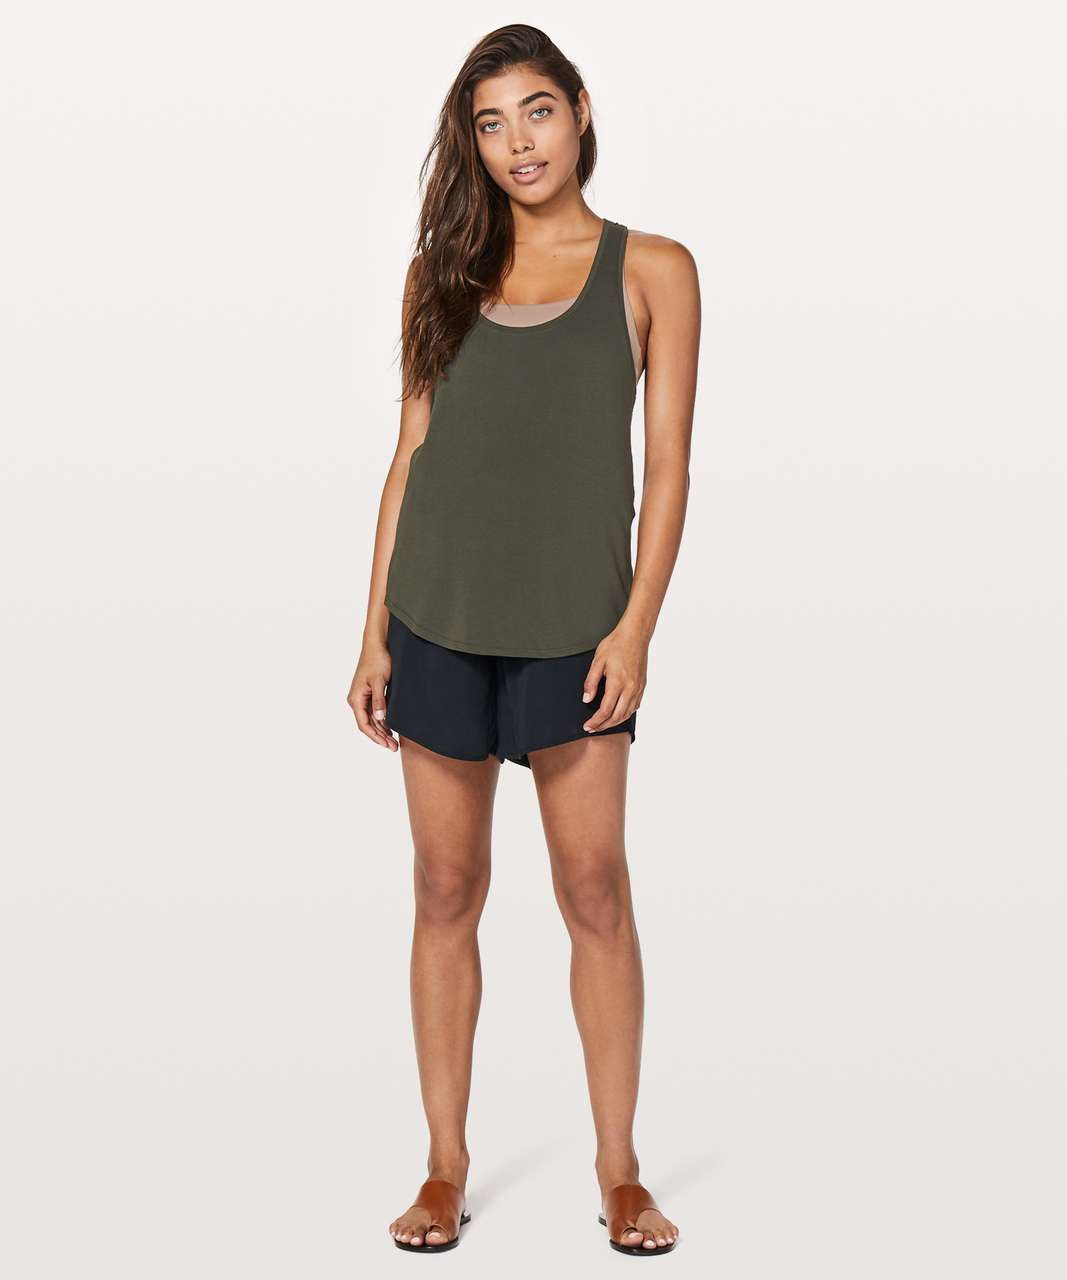 Lululemon Love Tank II - Dark Olive